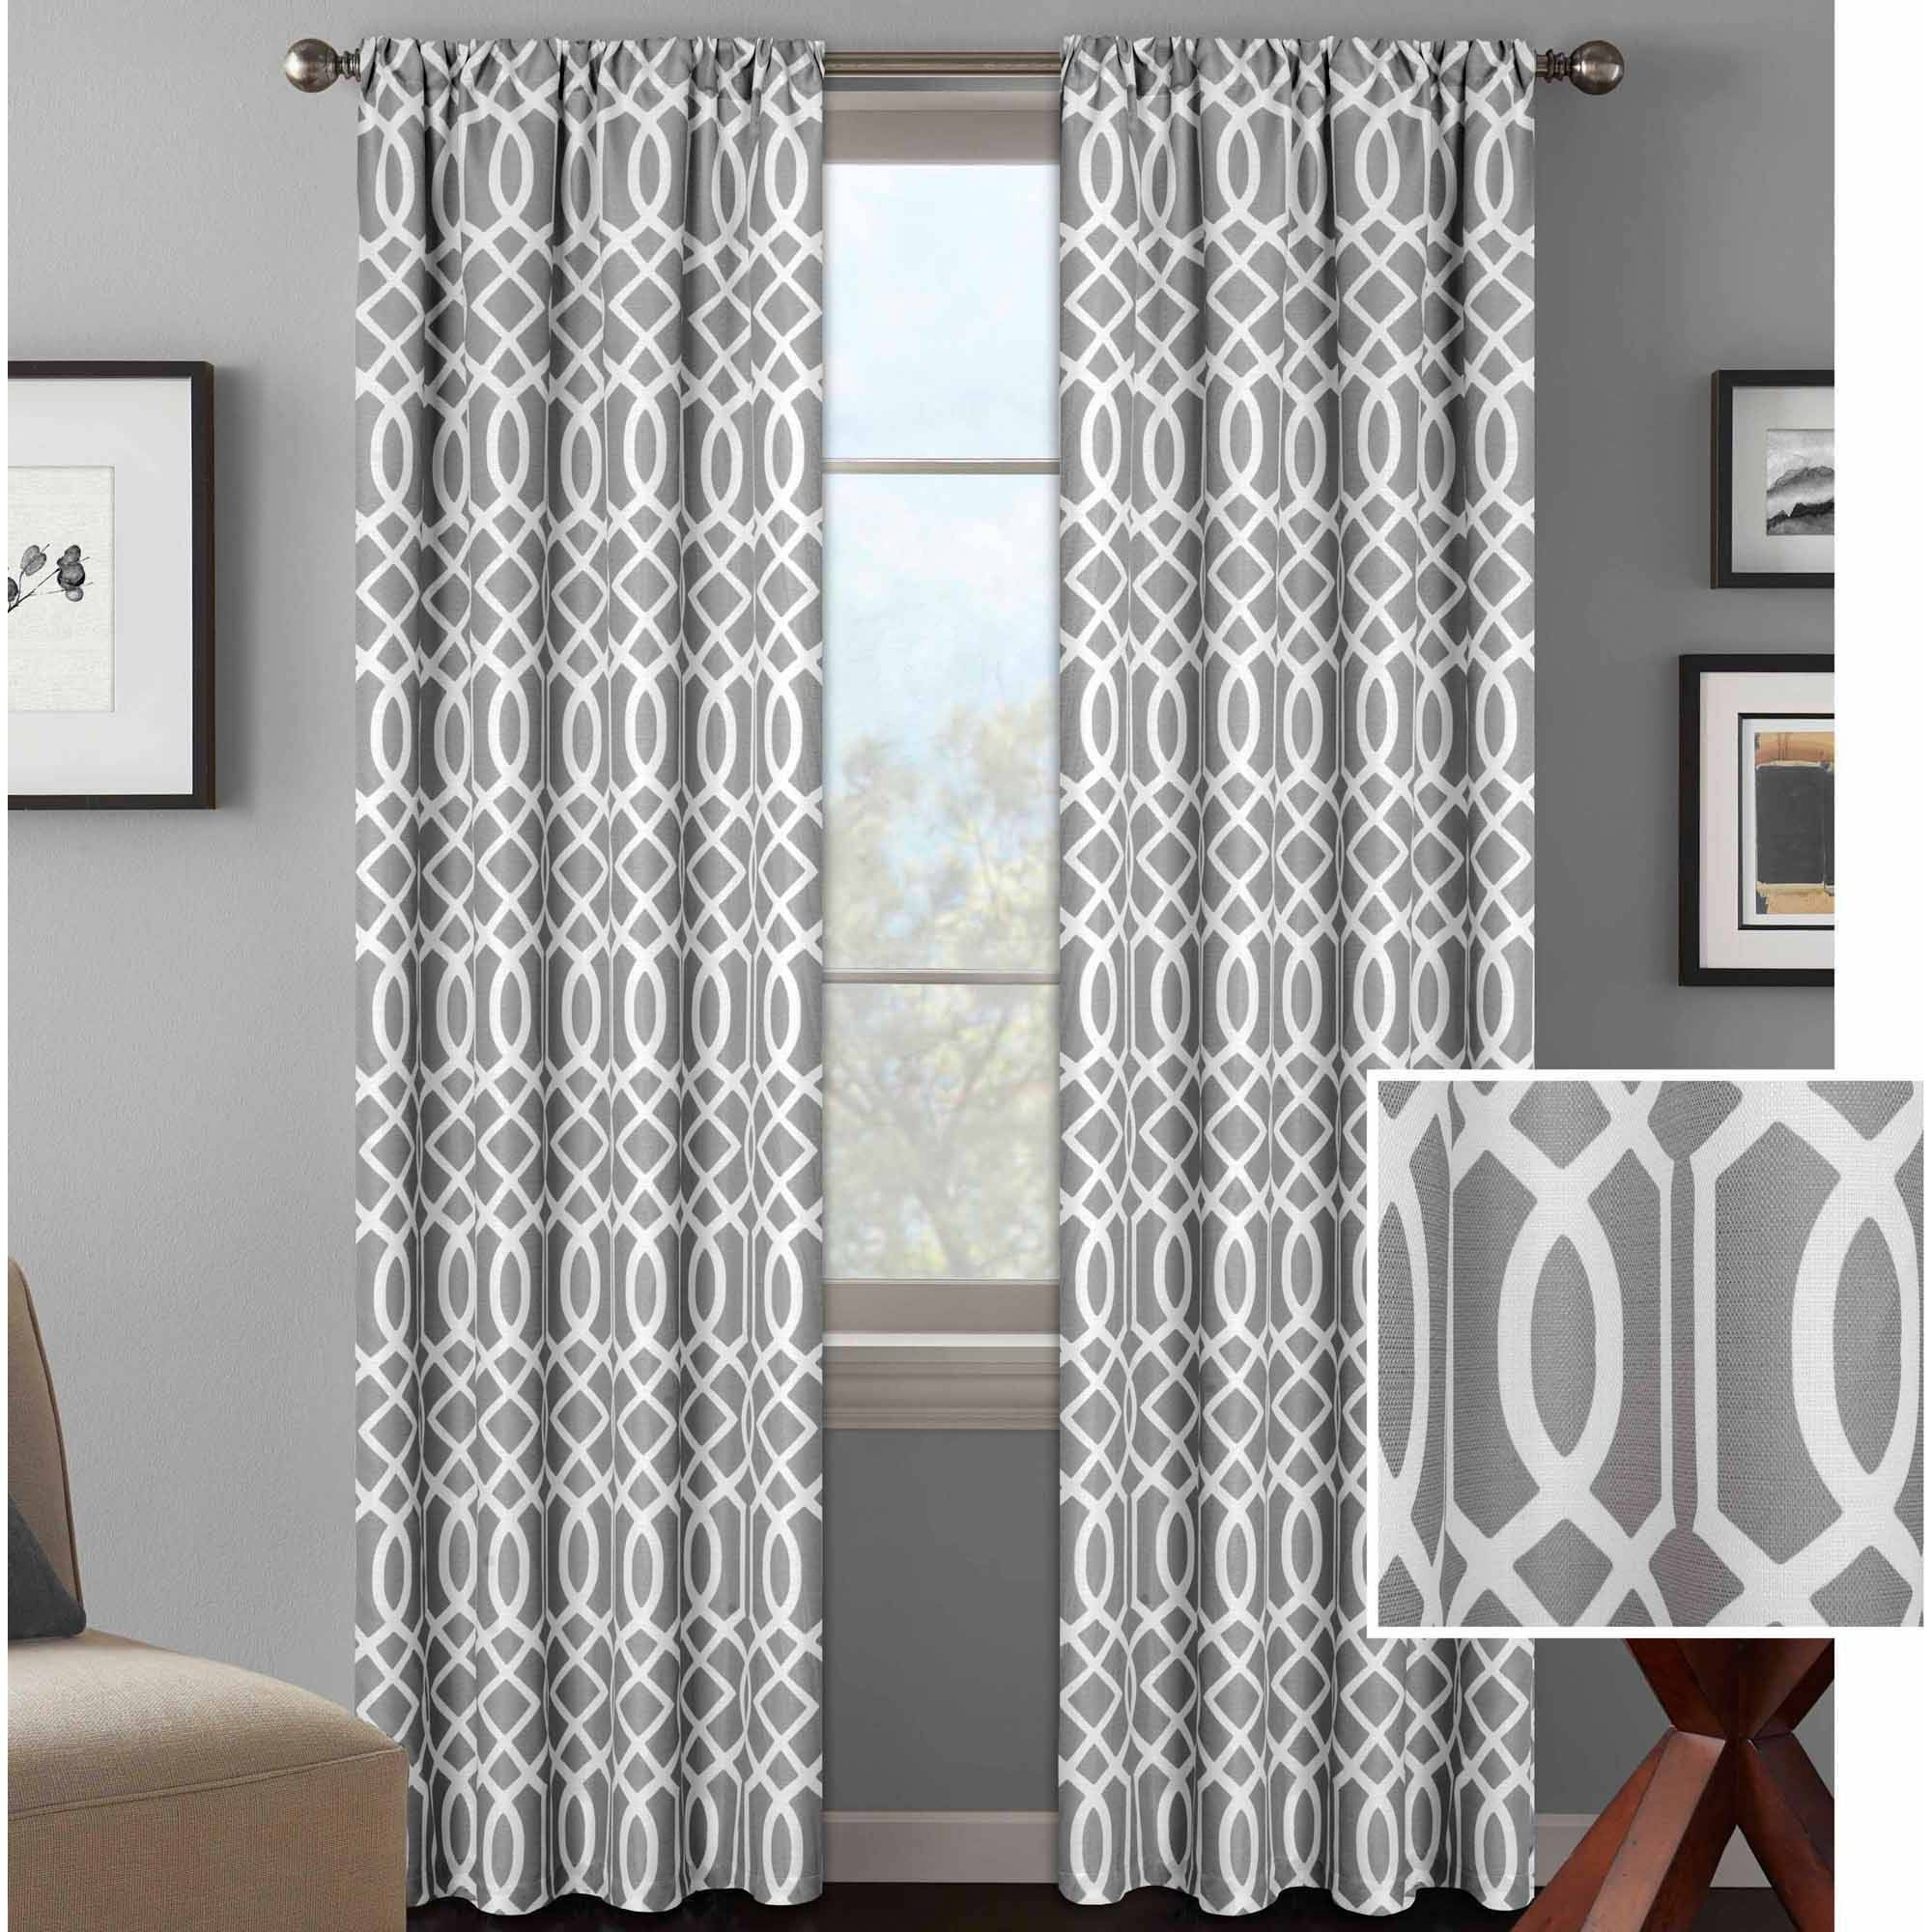 double photos singular curtain longhome home and catalog tension depotcurtains of drapes hometains at curtains design blindsattain amazon store rods full size jcpenney depot goods